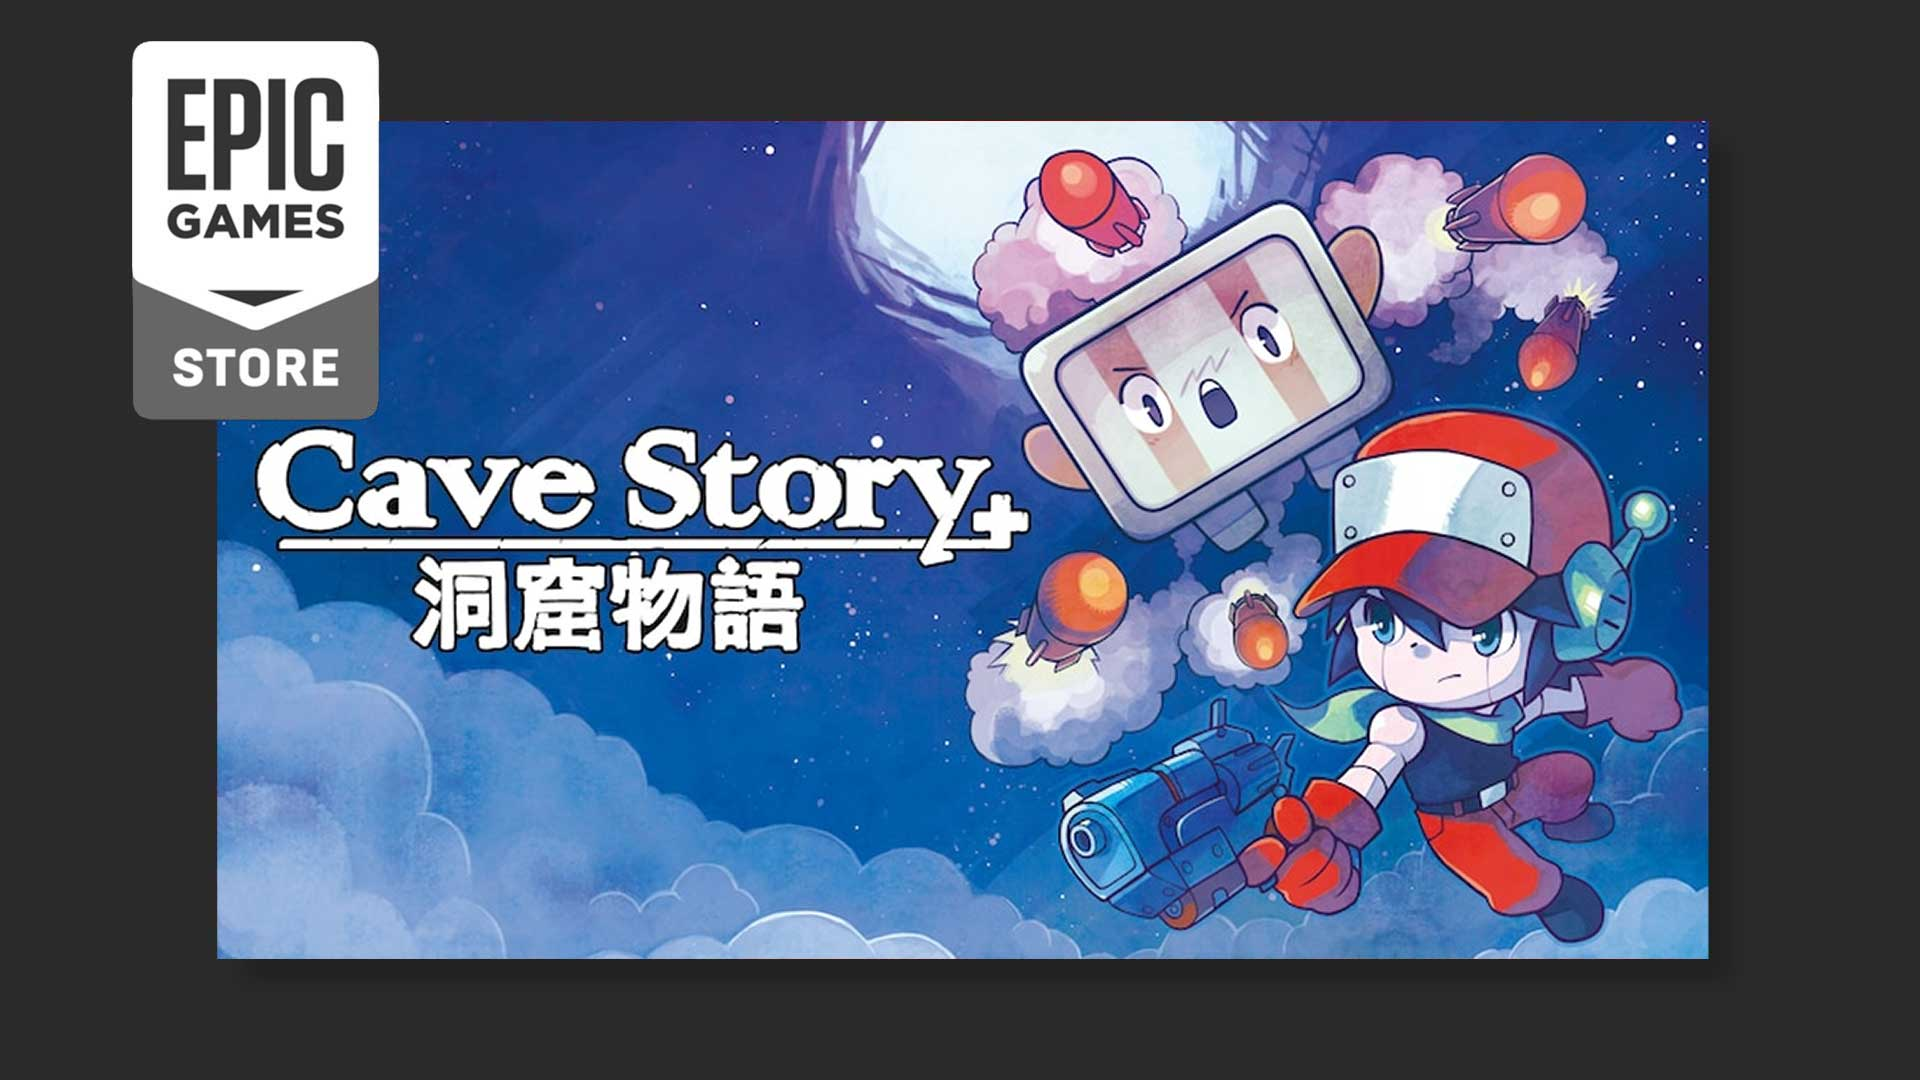 epic games store cave story